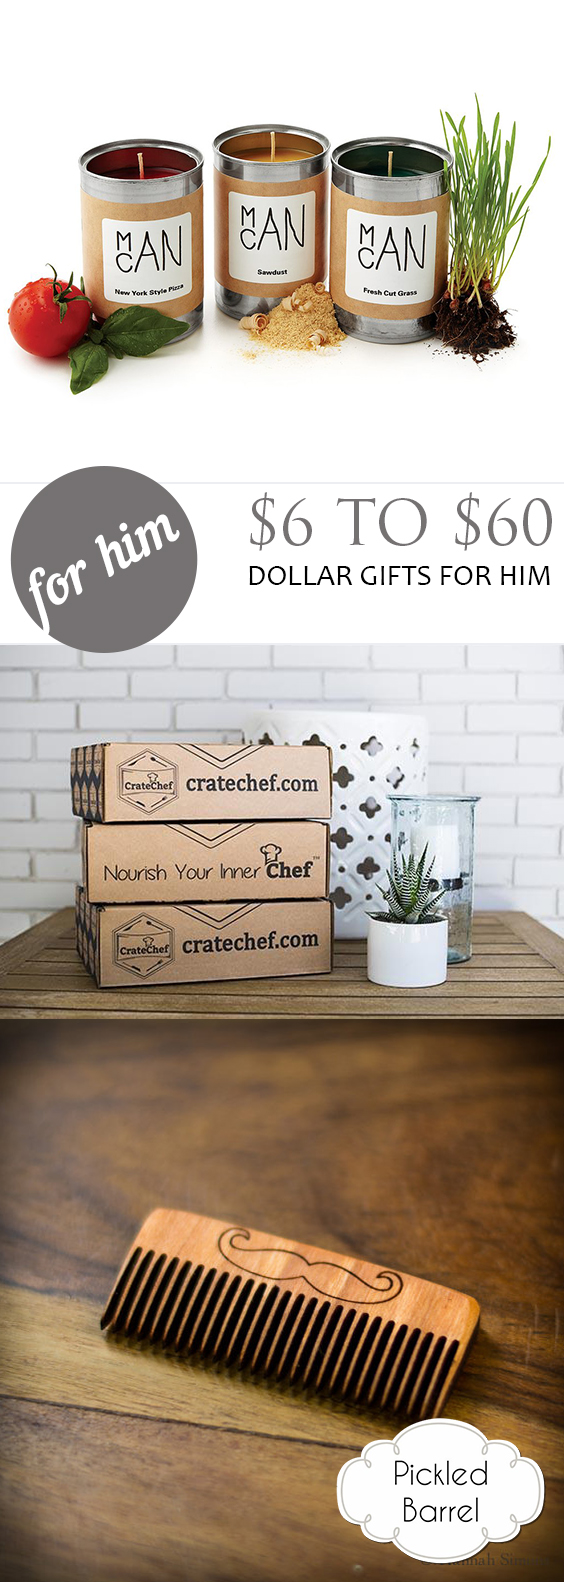 $6 to $60 Dollar Gifts for Him| Gifts, Gifts for Him, Inexpensive Gifts for Him, Cheap Gifts for Him, DIY Gifts, Creative Gift Ideas for Him, Valentines Day Gifts for Him #GiftsforHim #CheapGifts #DIYGifts